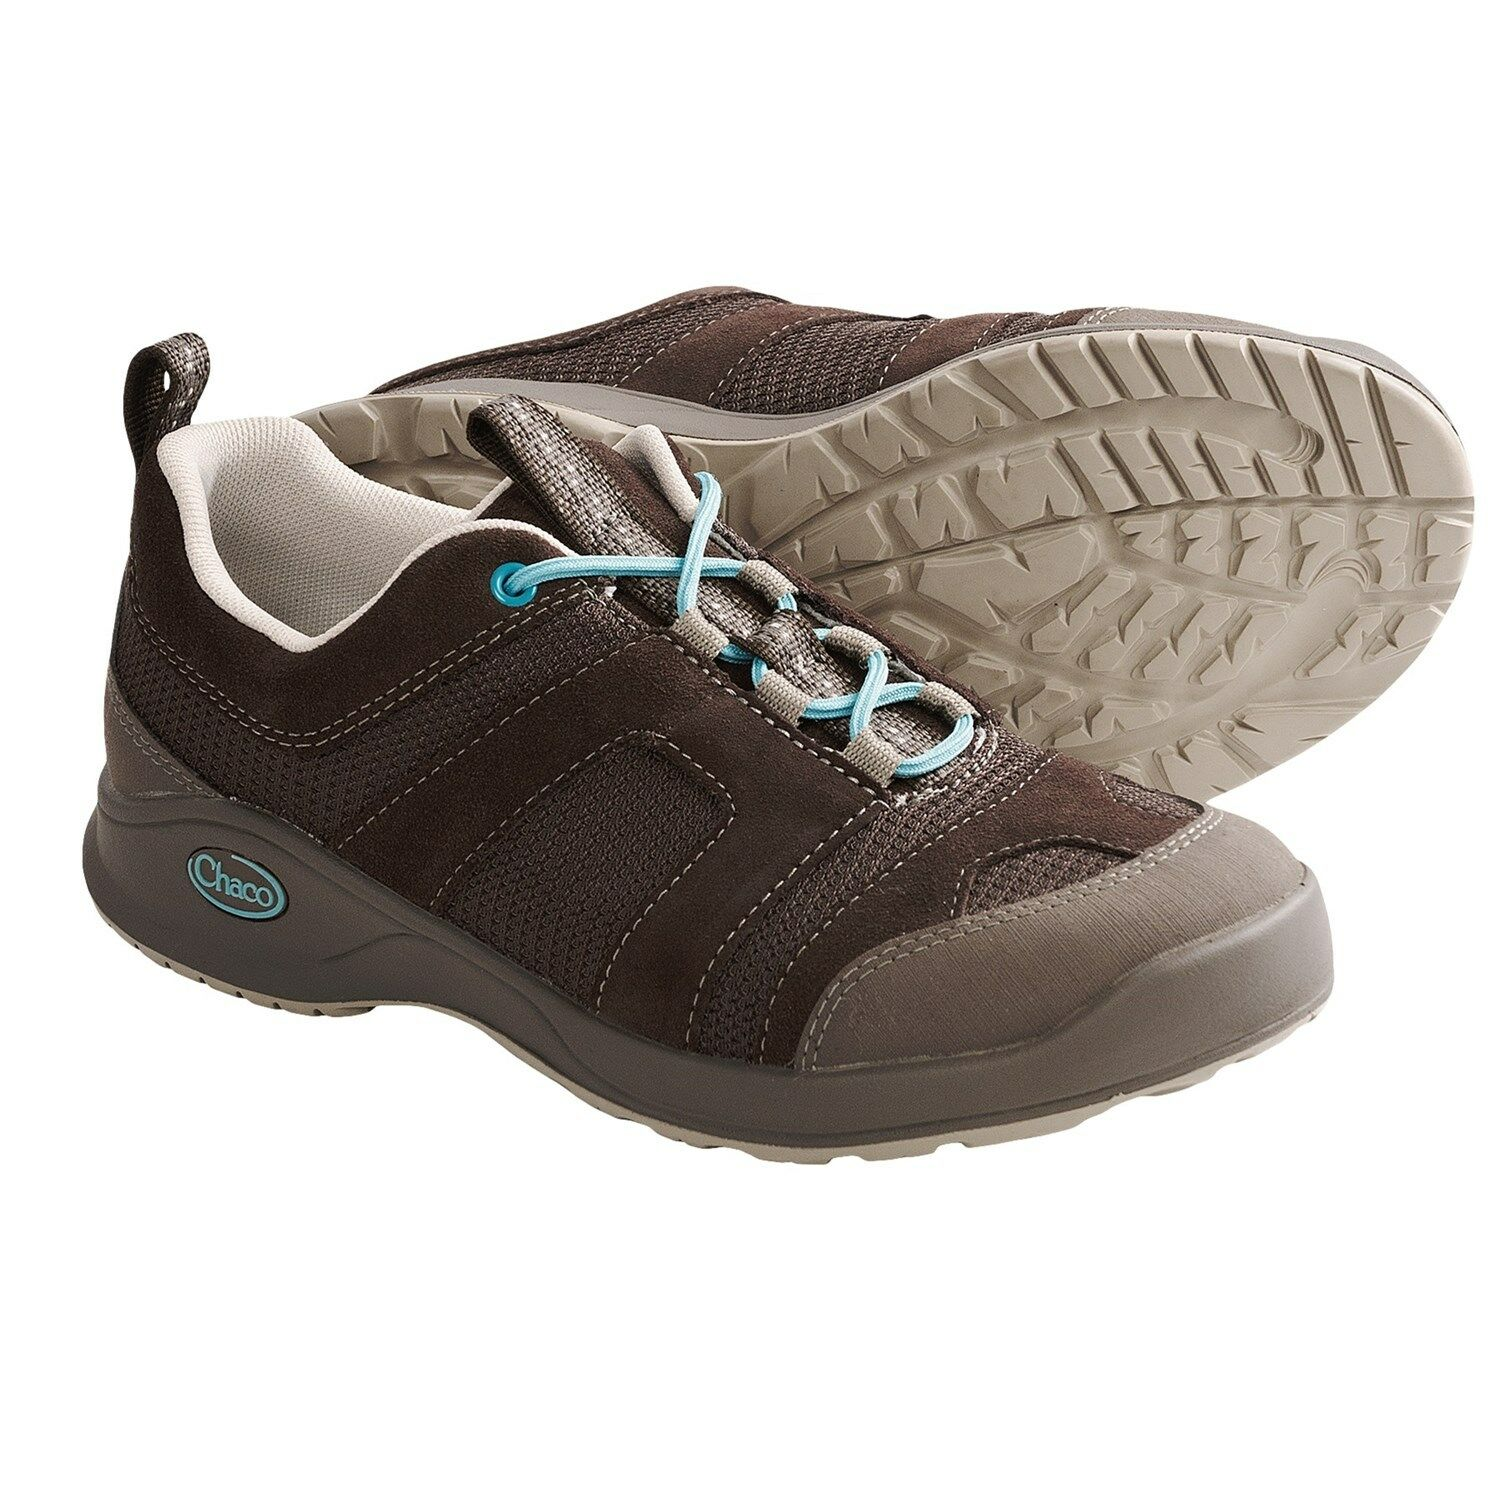 New Womens Chaco Vade Bulloo Hiking Walking shoes MSRP